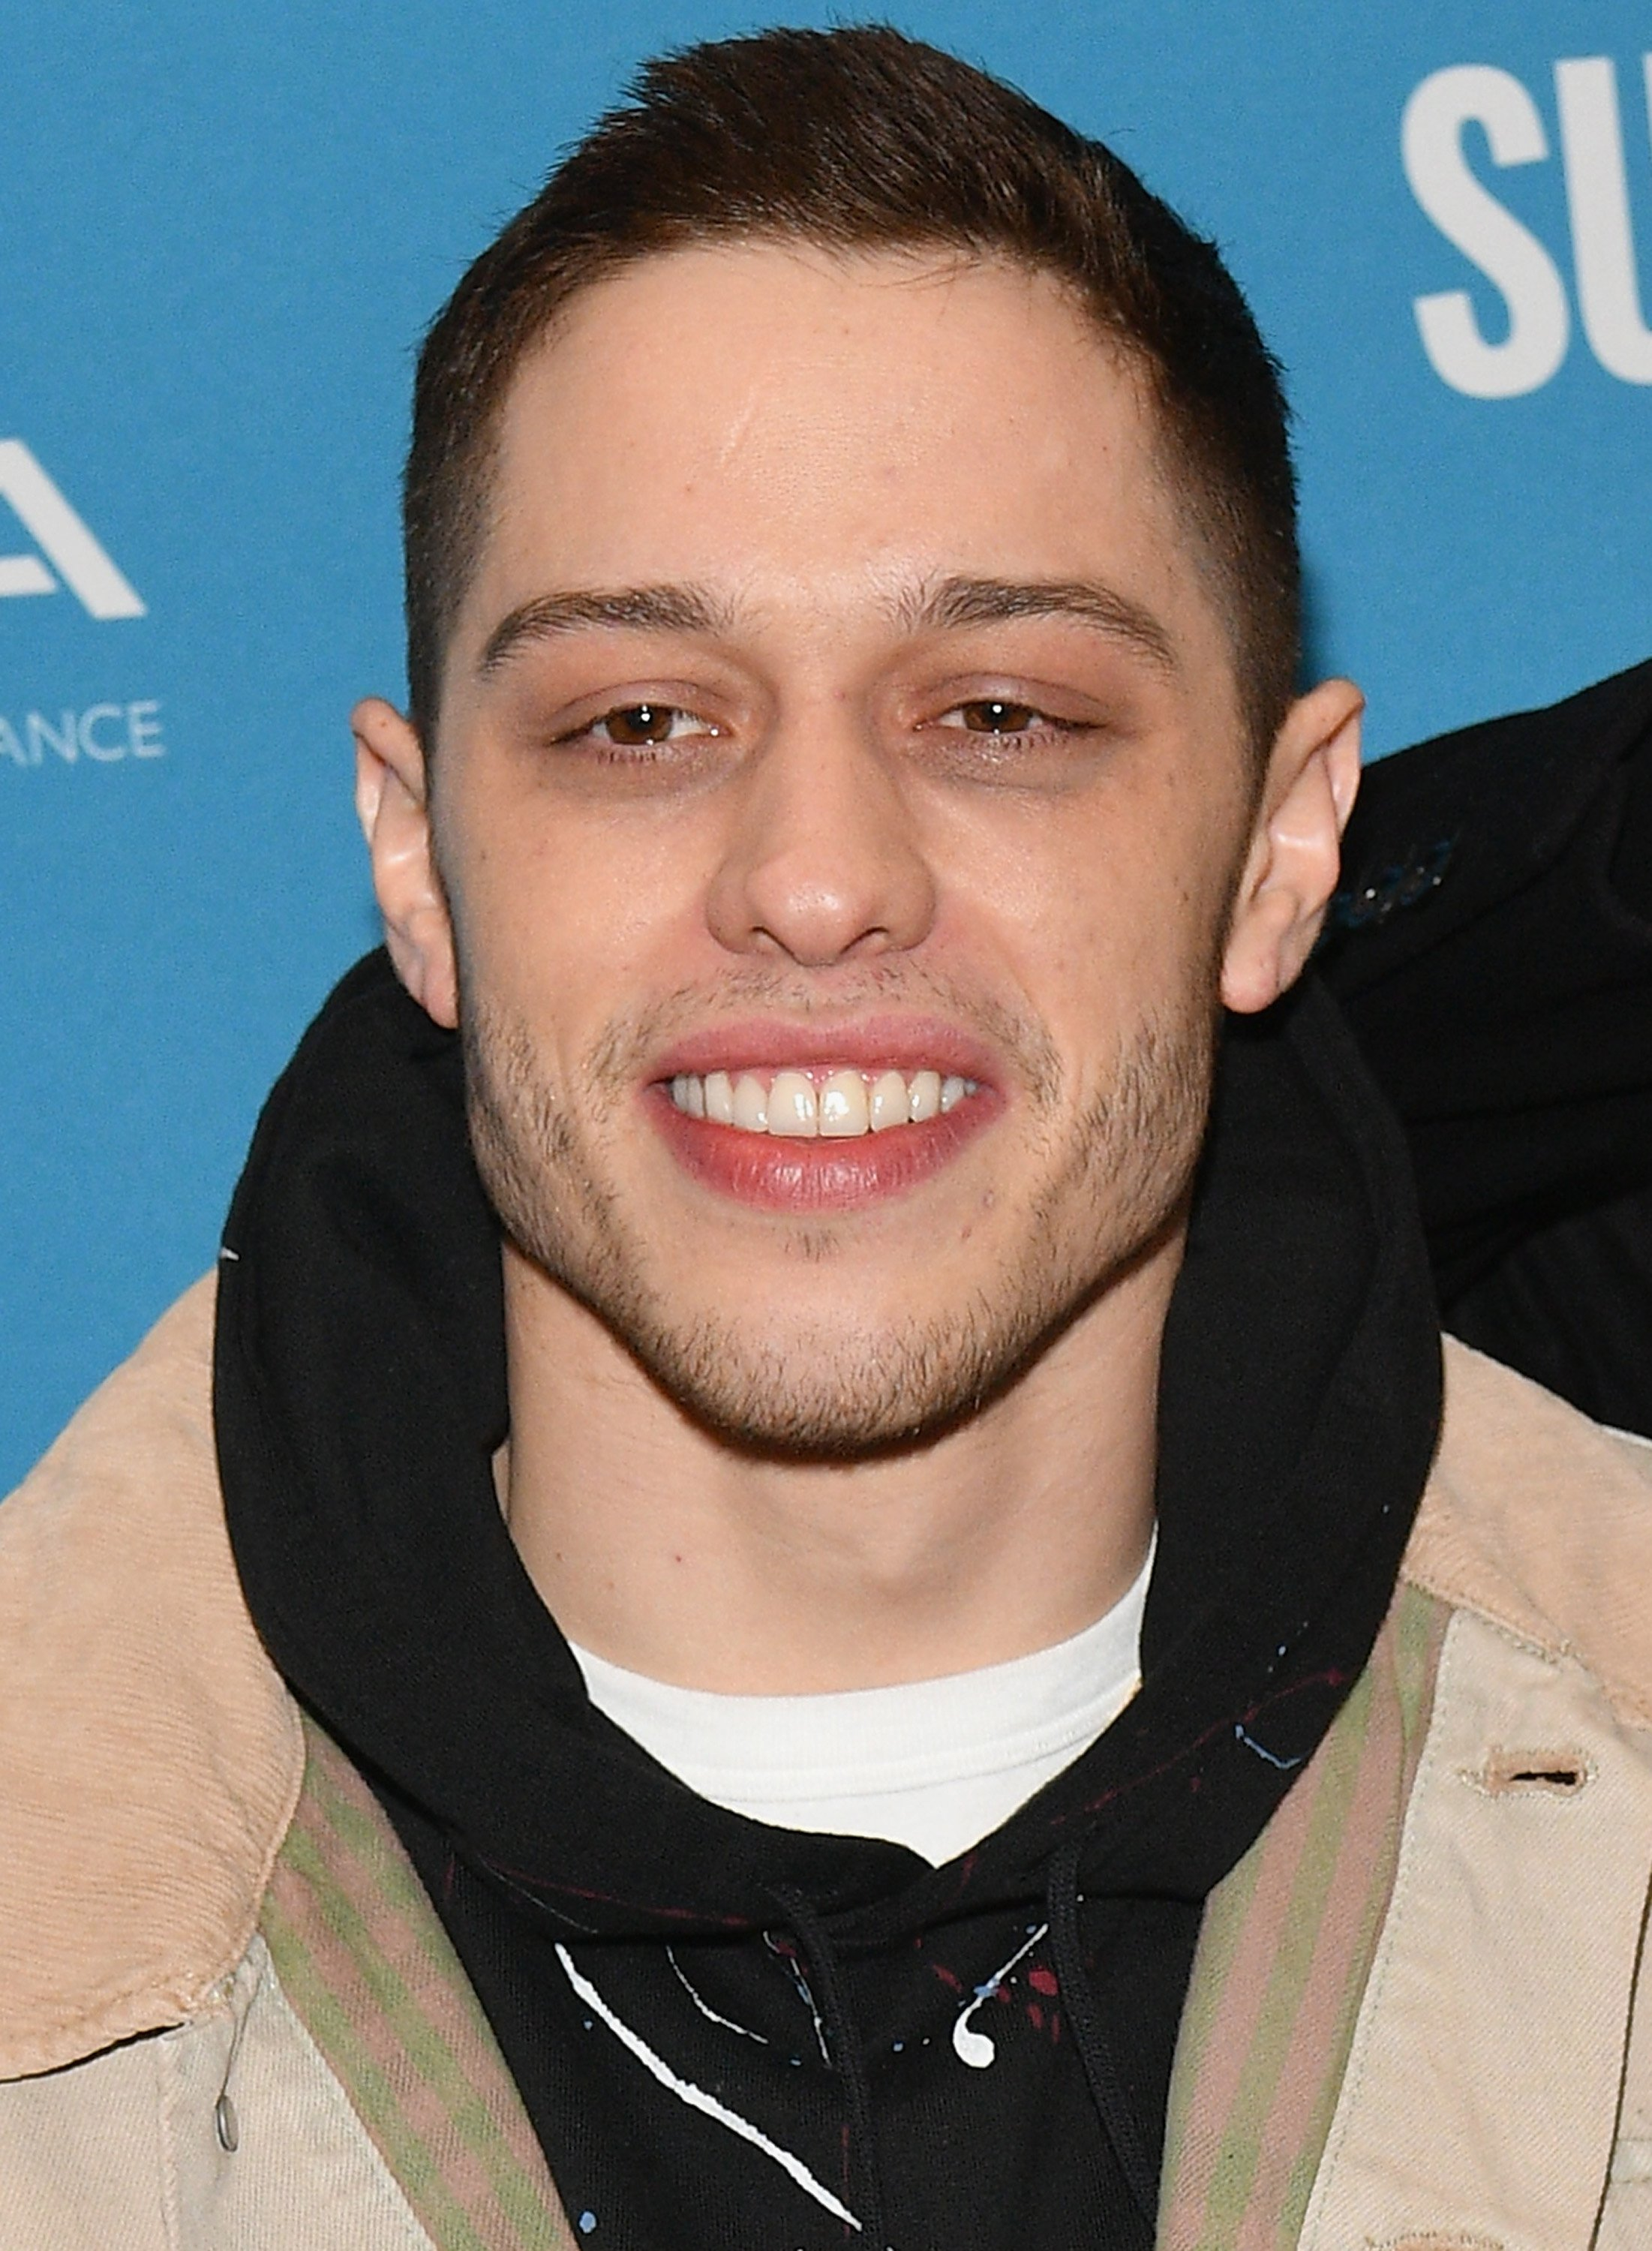 "Pete Davidson attends the premiere of ""Big Time Adolescence"" at the 2019 Sundance Film Festival in Park City, Utah on January 28, 2019 